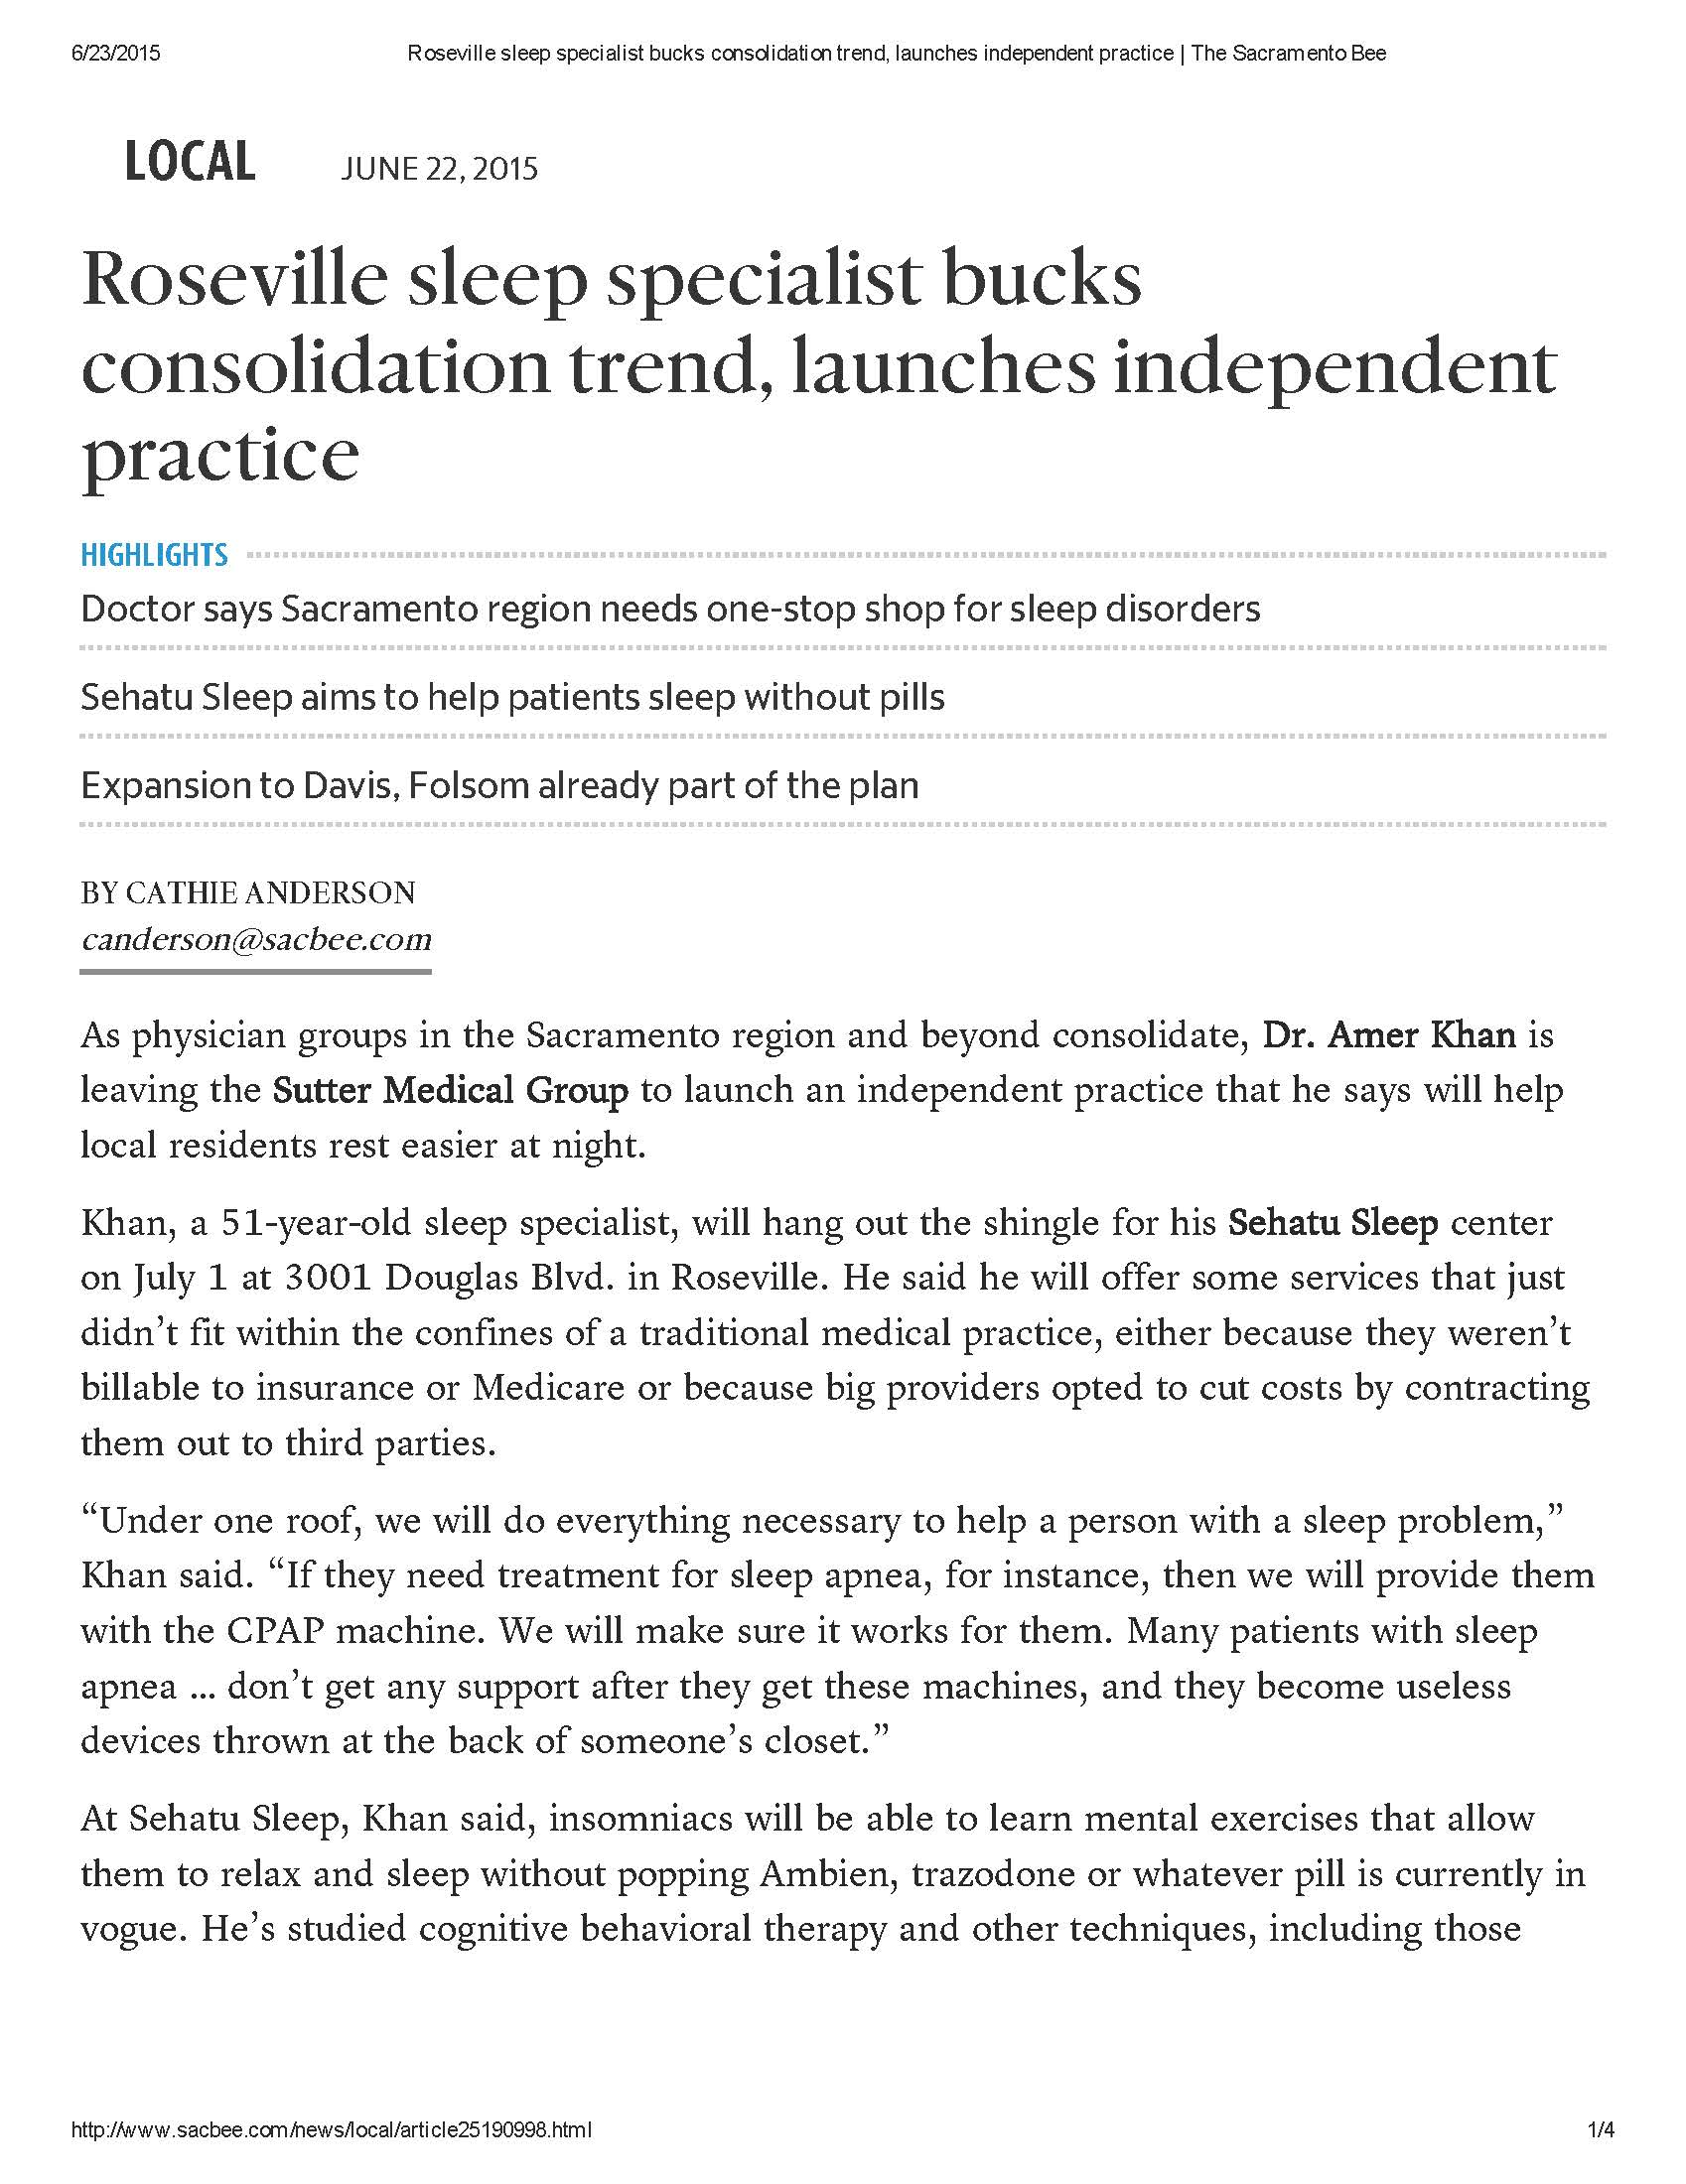 Roseville sleep specialist bucks consolidation trend, launches independent practice _ The Sacramento Bee_Page_1.jpg